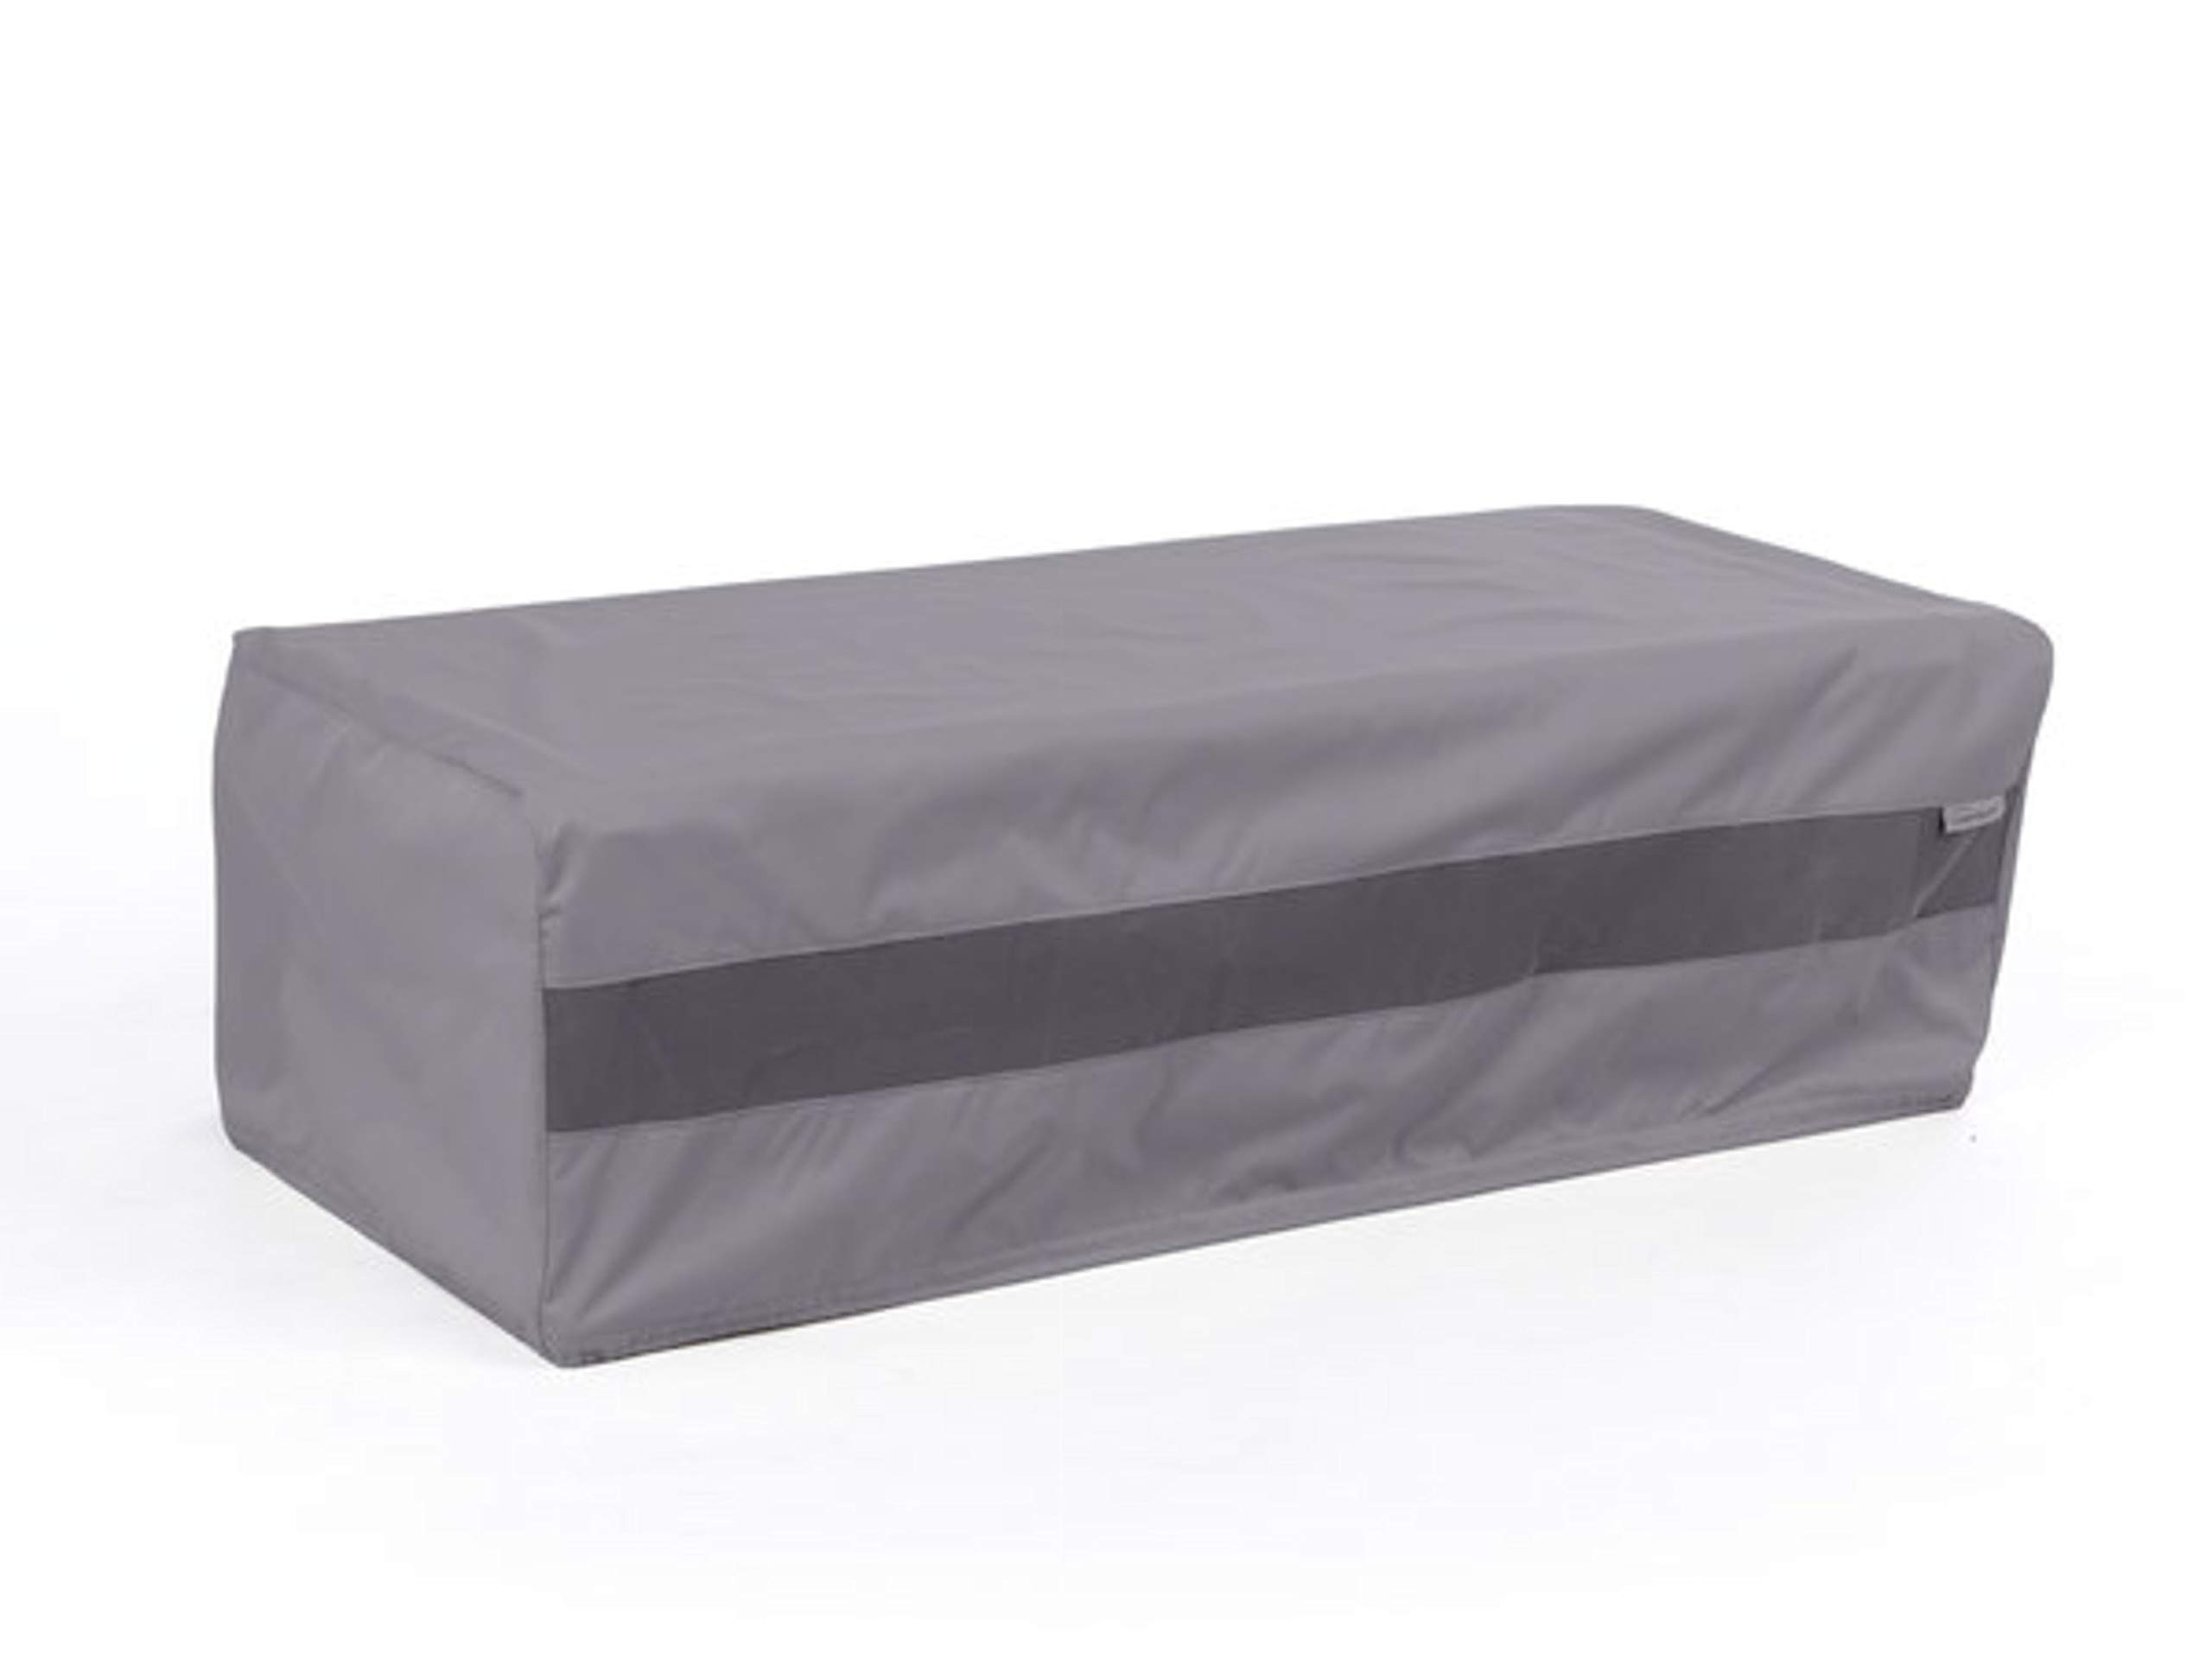 Covermates - Ice Chest Cover - 48W x 28D x 18H - Elite - 300D Stock-Dyed Polyester - Double Stitched Seams - Locking Drawcord - 3 YR Warranty - Weather Resistant - Charcoal by Covermates